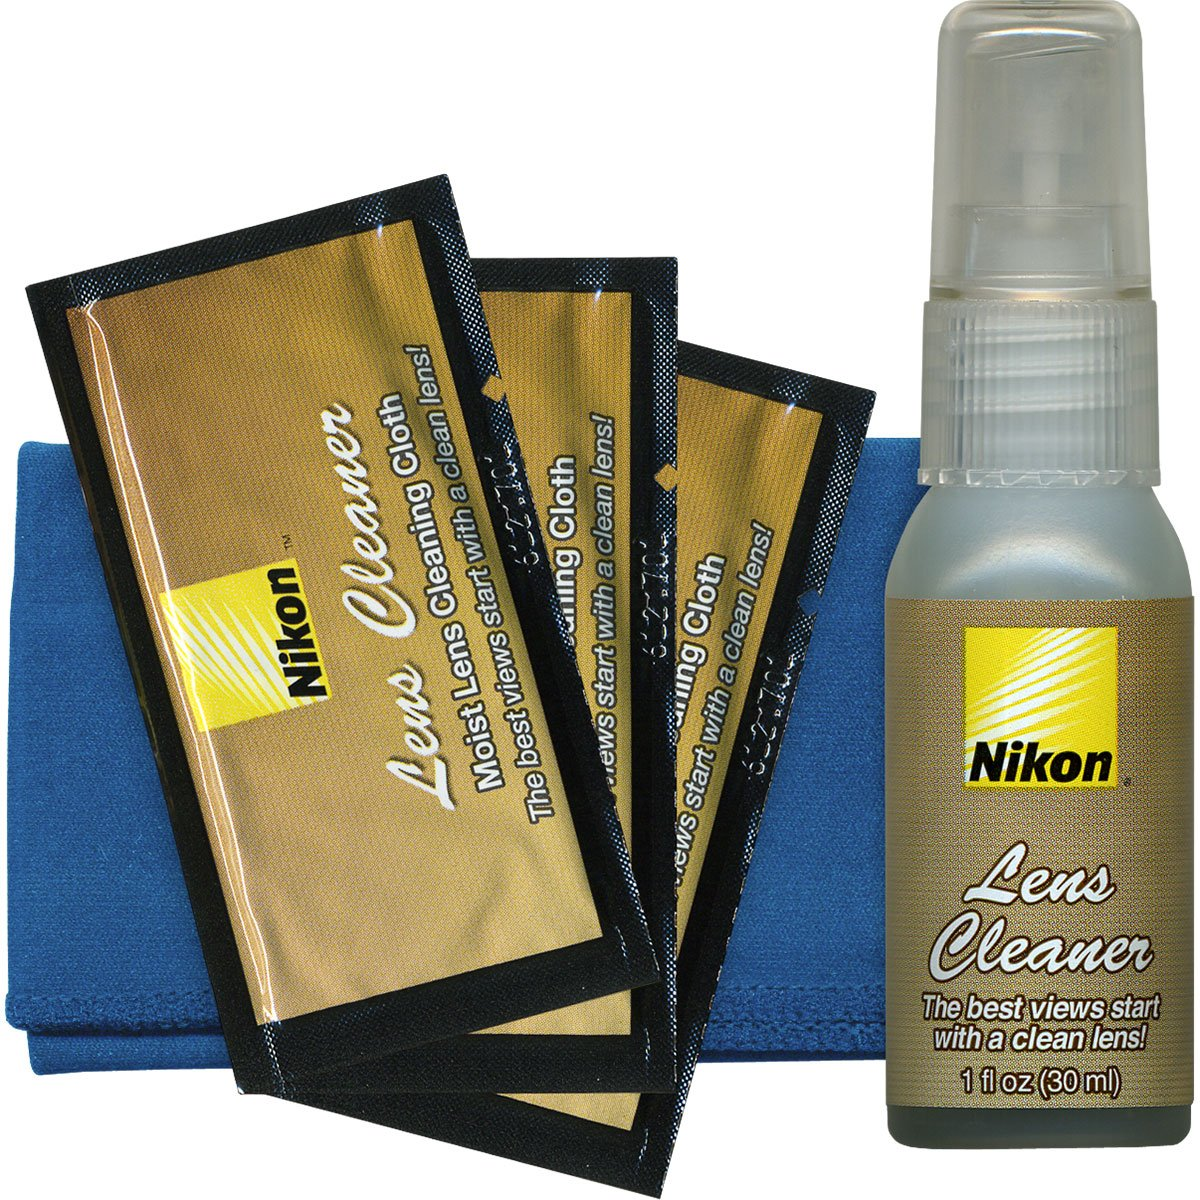 Nikon Lens and Digital SLR Camera Cleaning Kit with Cloth + Lenspen SensorKlear Loupe Cleaning Kit for D4S, D810, D800, D610, D7100, D7000, D5300, D5200, D3300, D3200 by Nikon